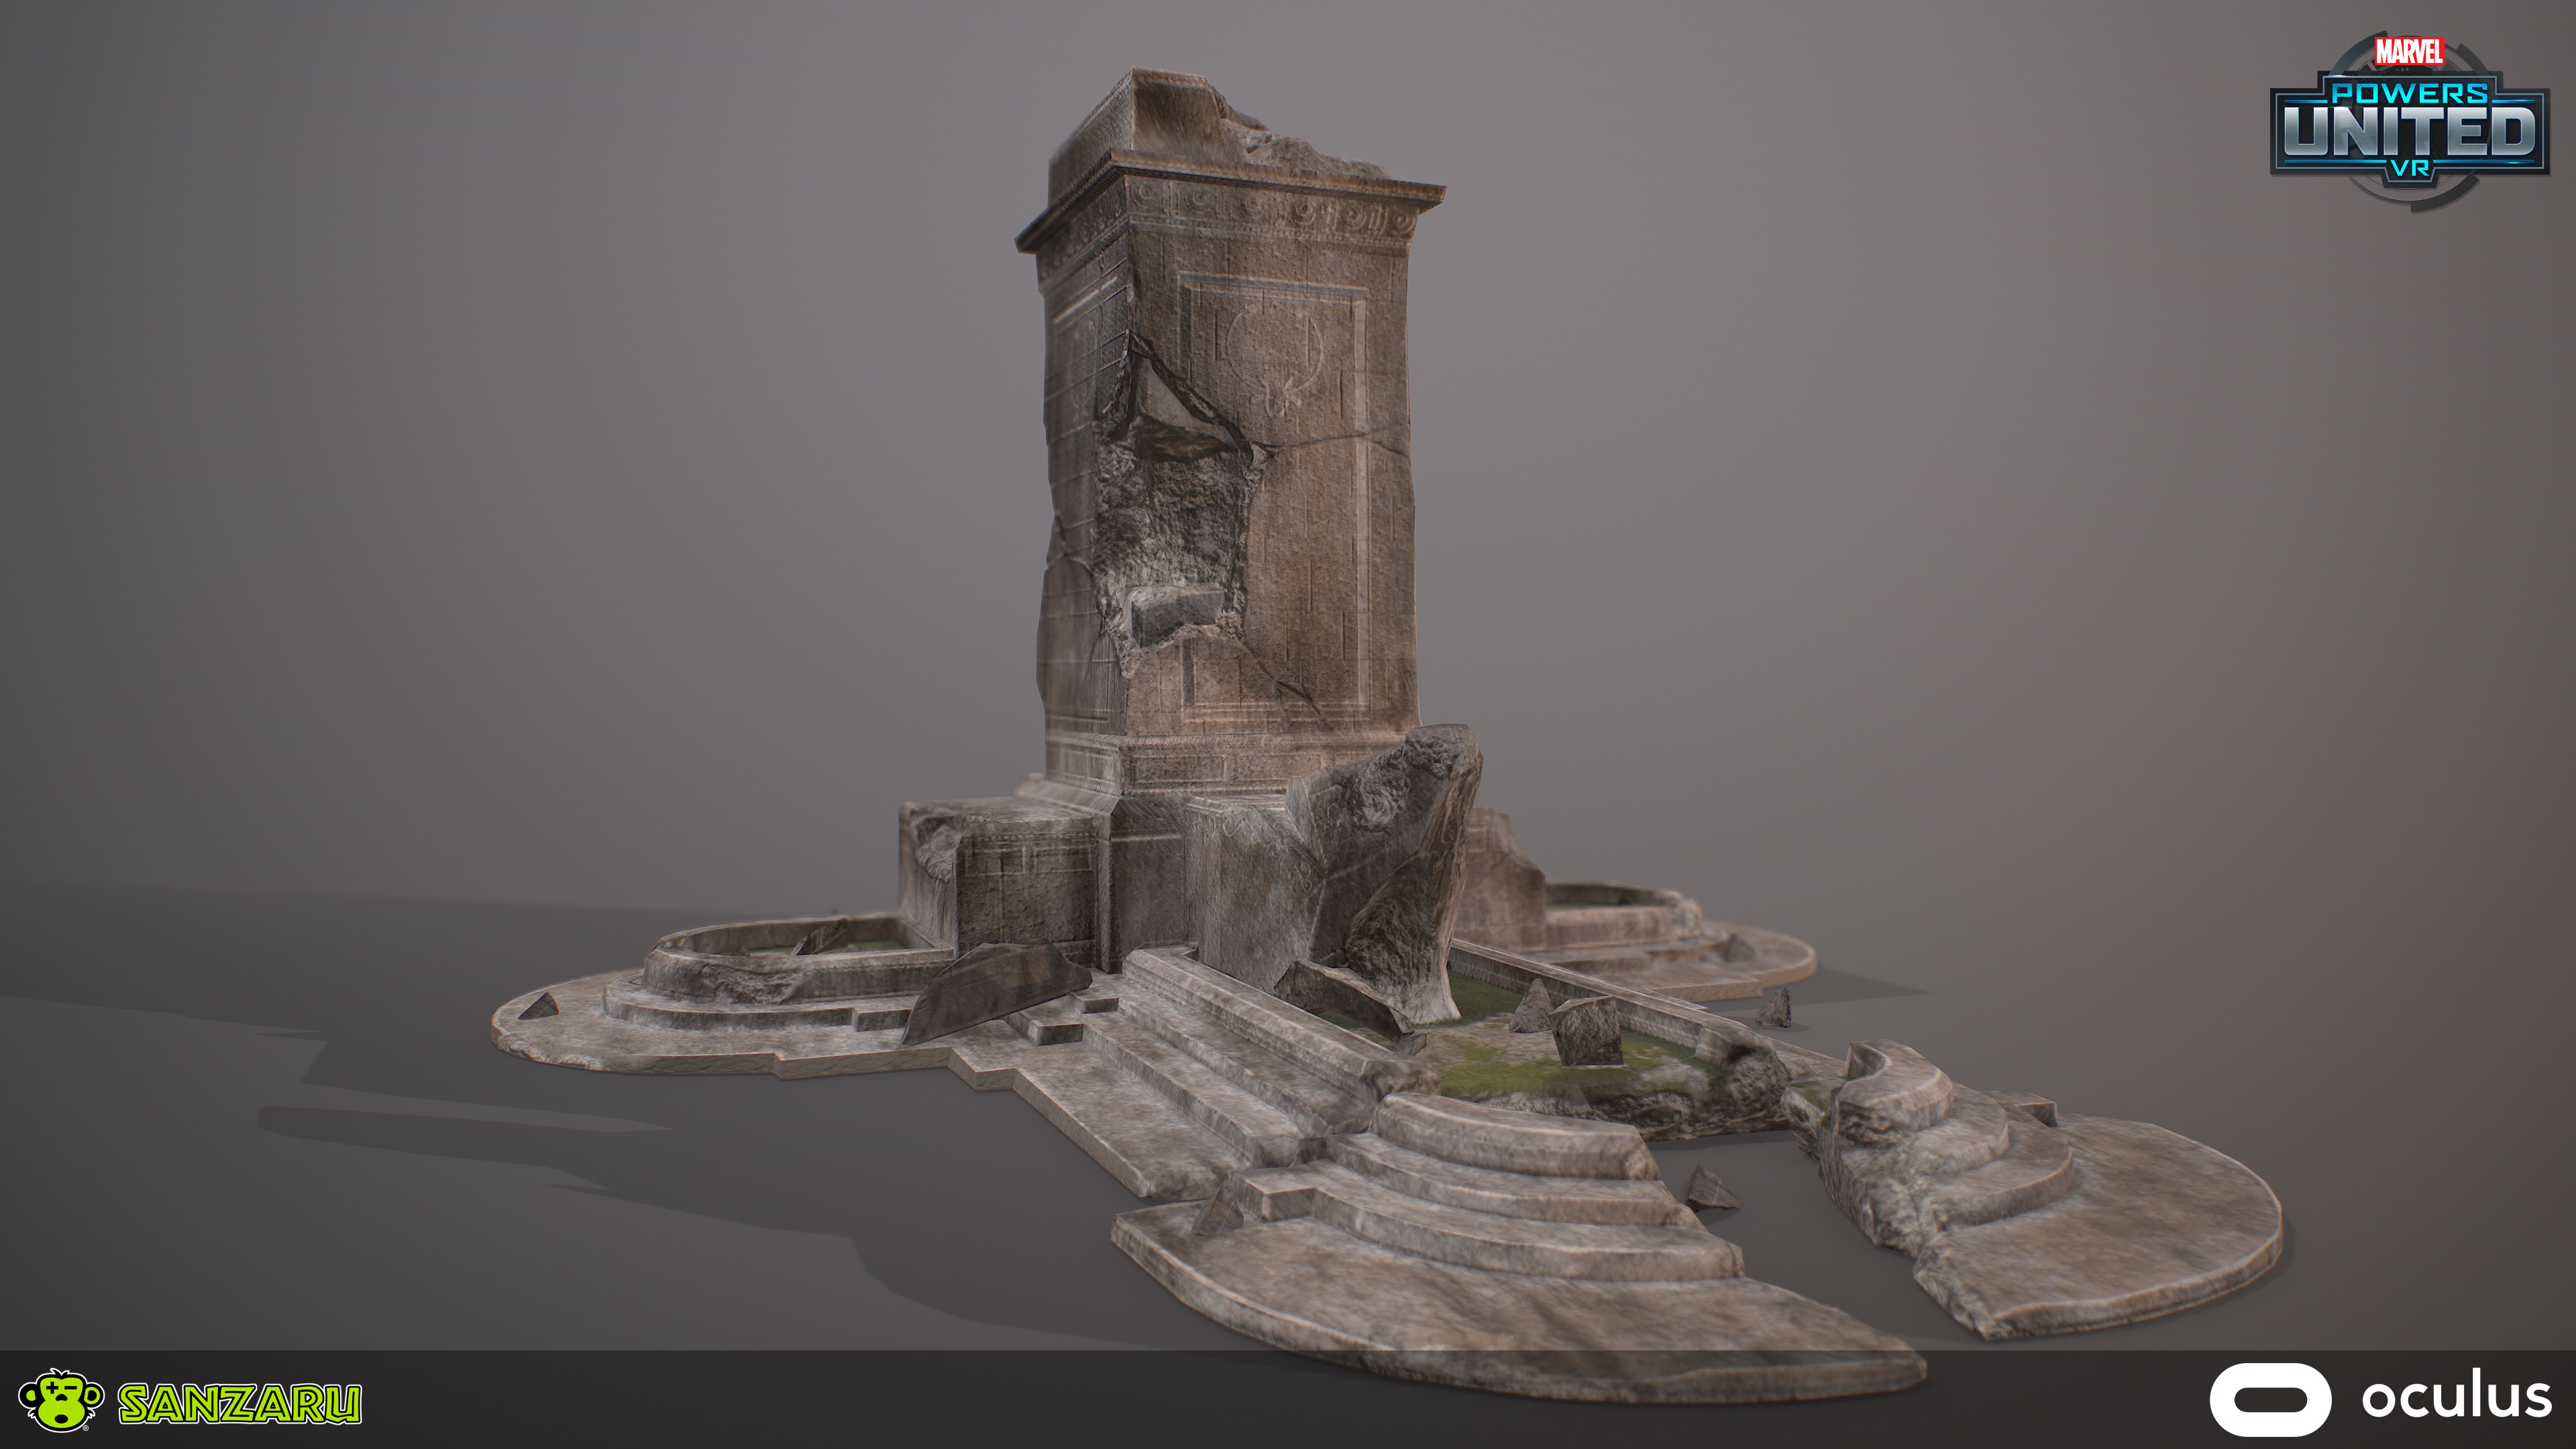 Damaged US Park Monument - Solo View Sculpted in ZBrush, Original Maps rebaked in Substance Designer and Final Bakes and Texturing done in Substance Painter.